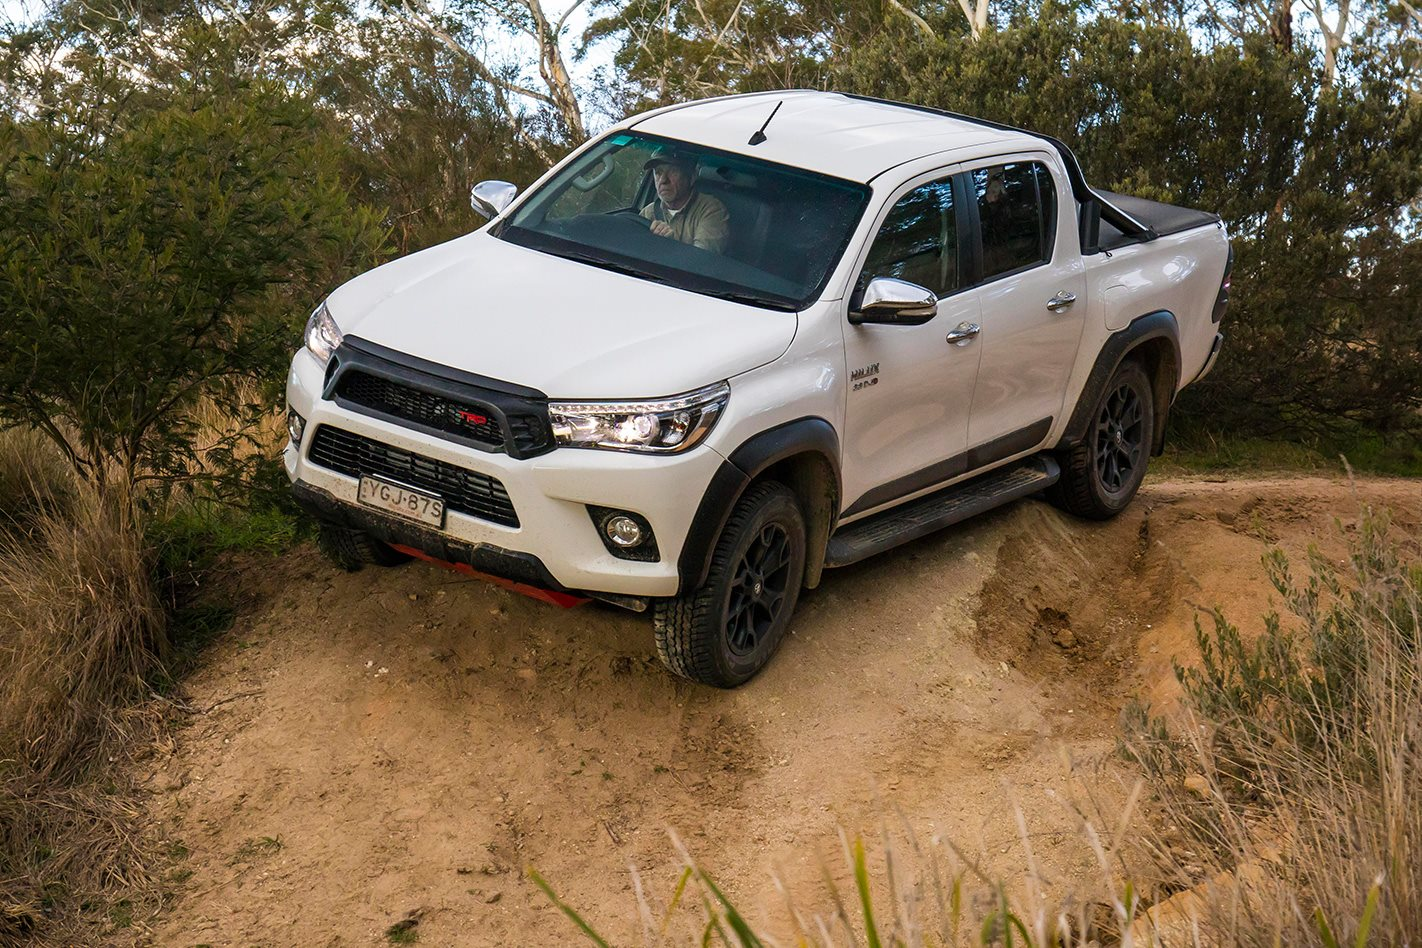 Toyota Hilux FX4 offroad